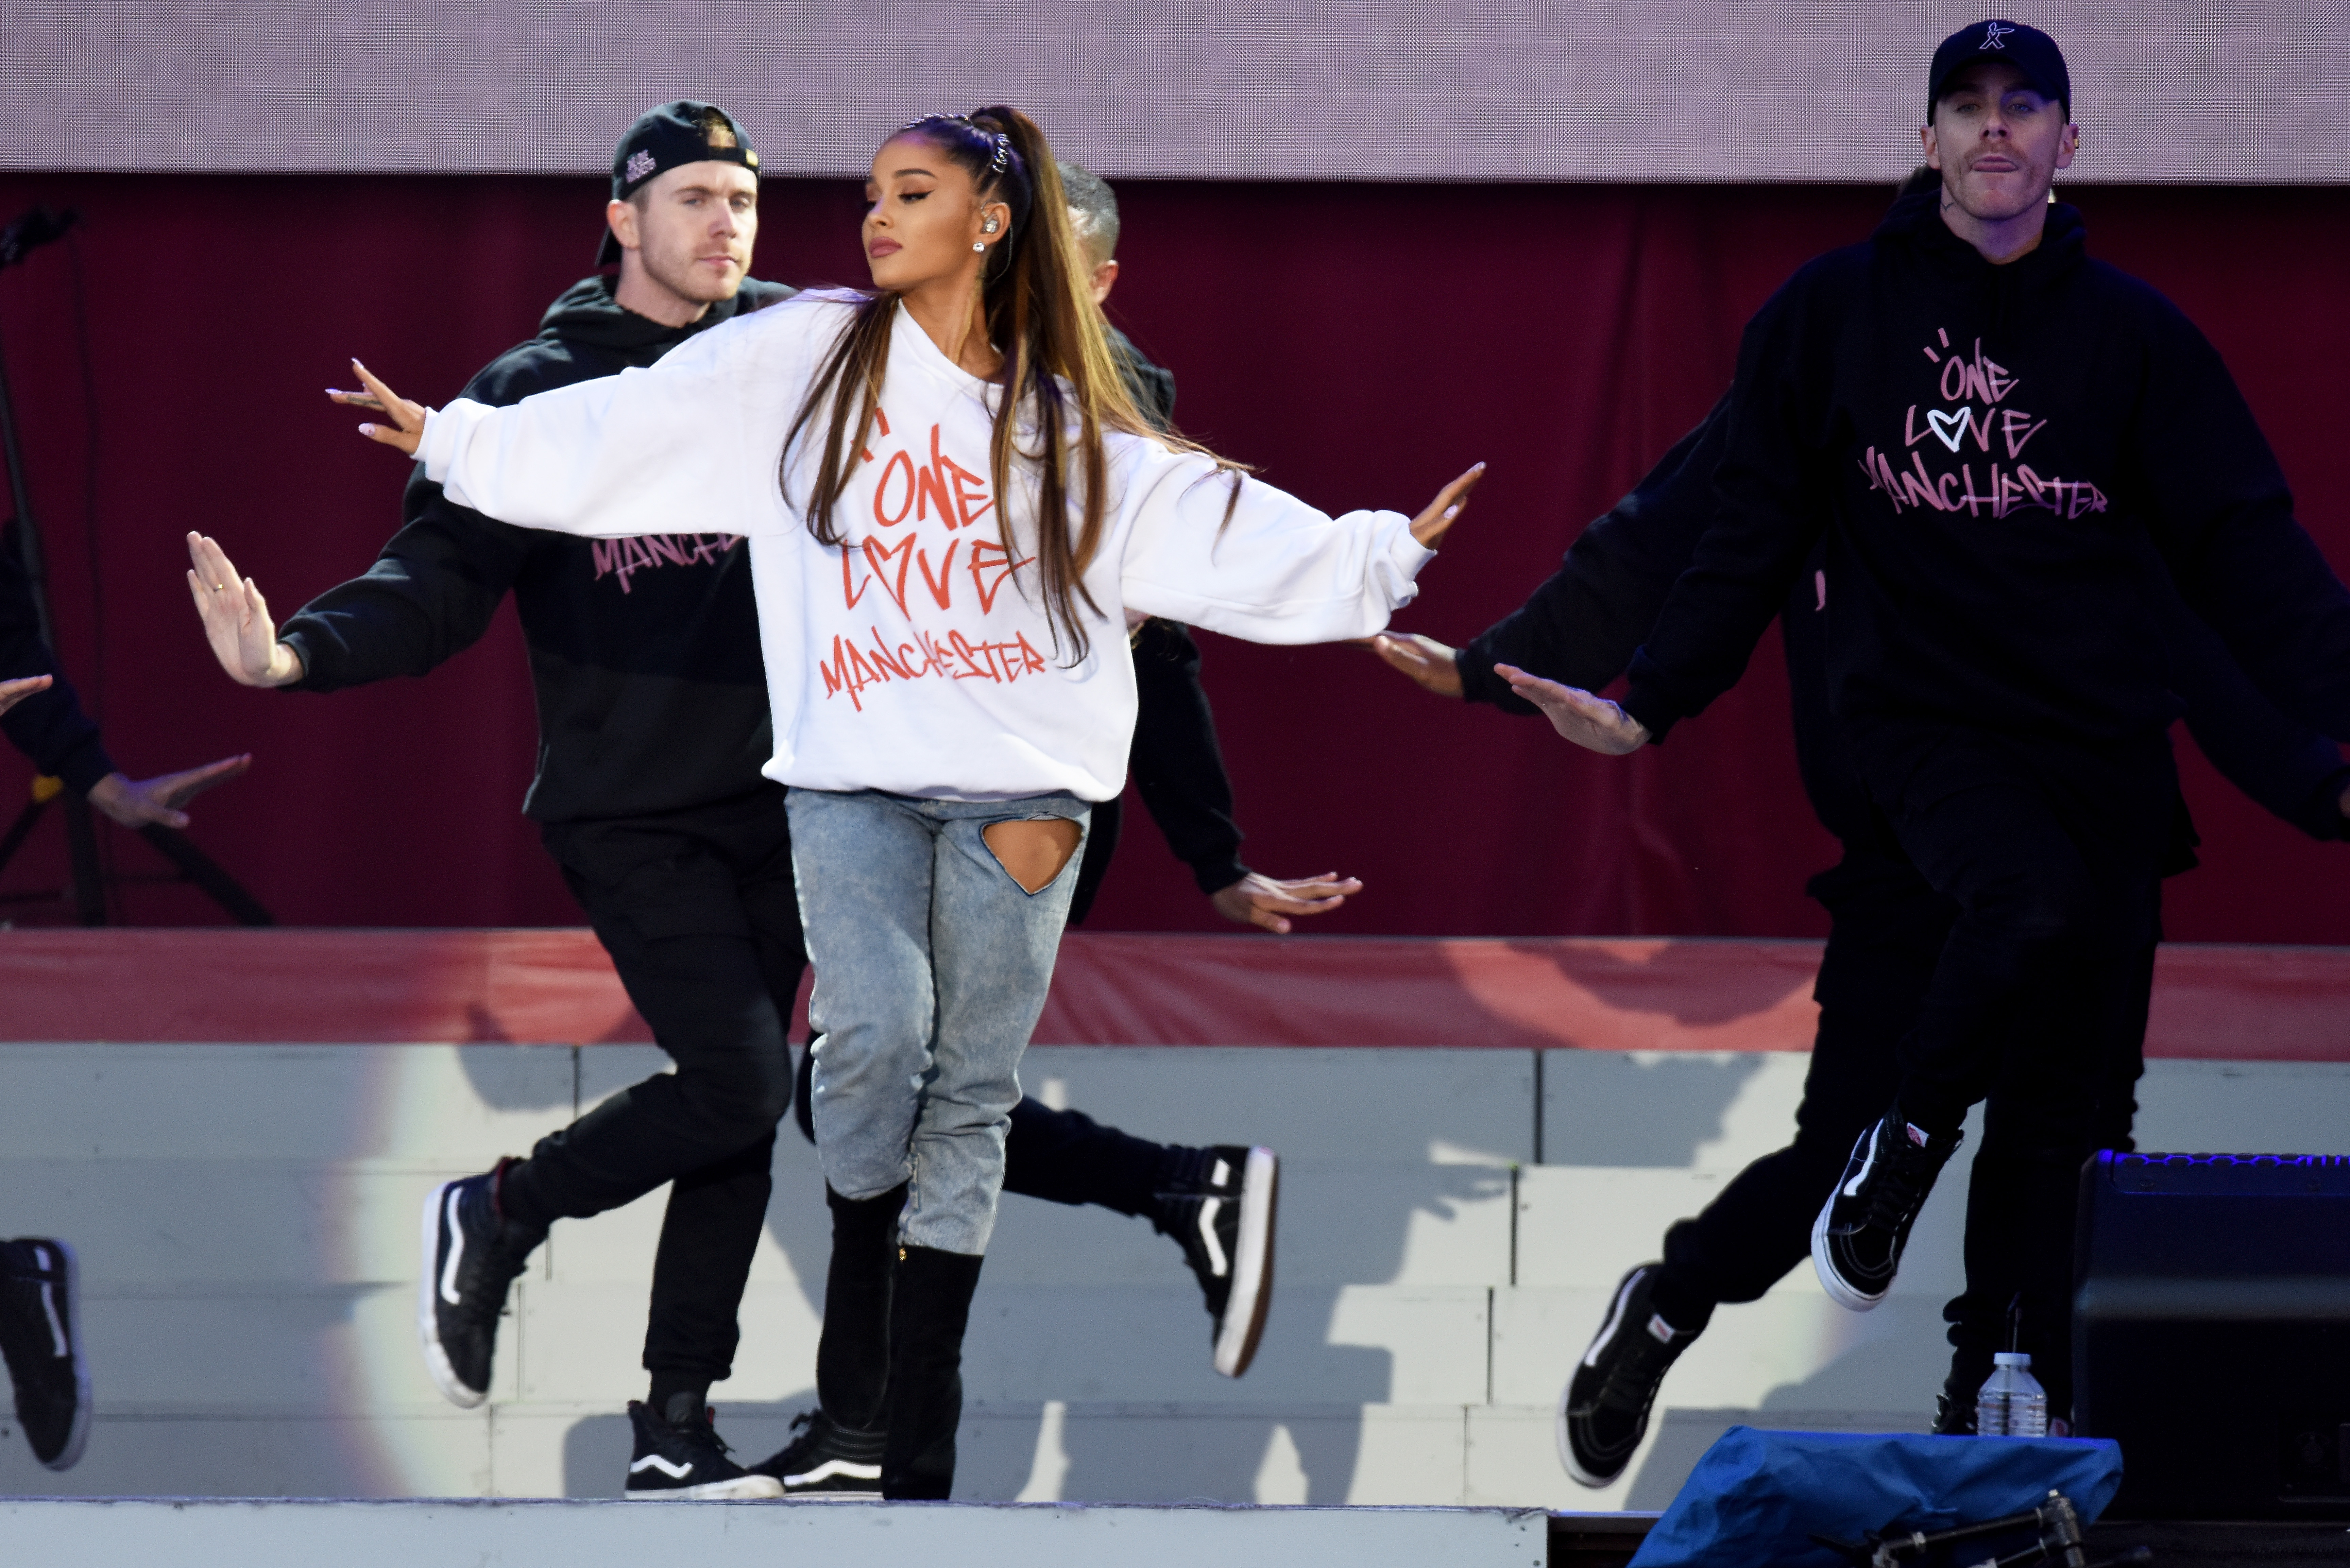 Extra security at Ariana Grande's Buenos Aires concert